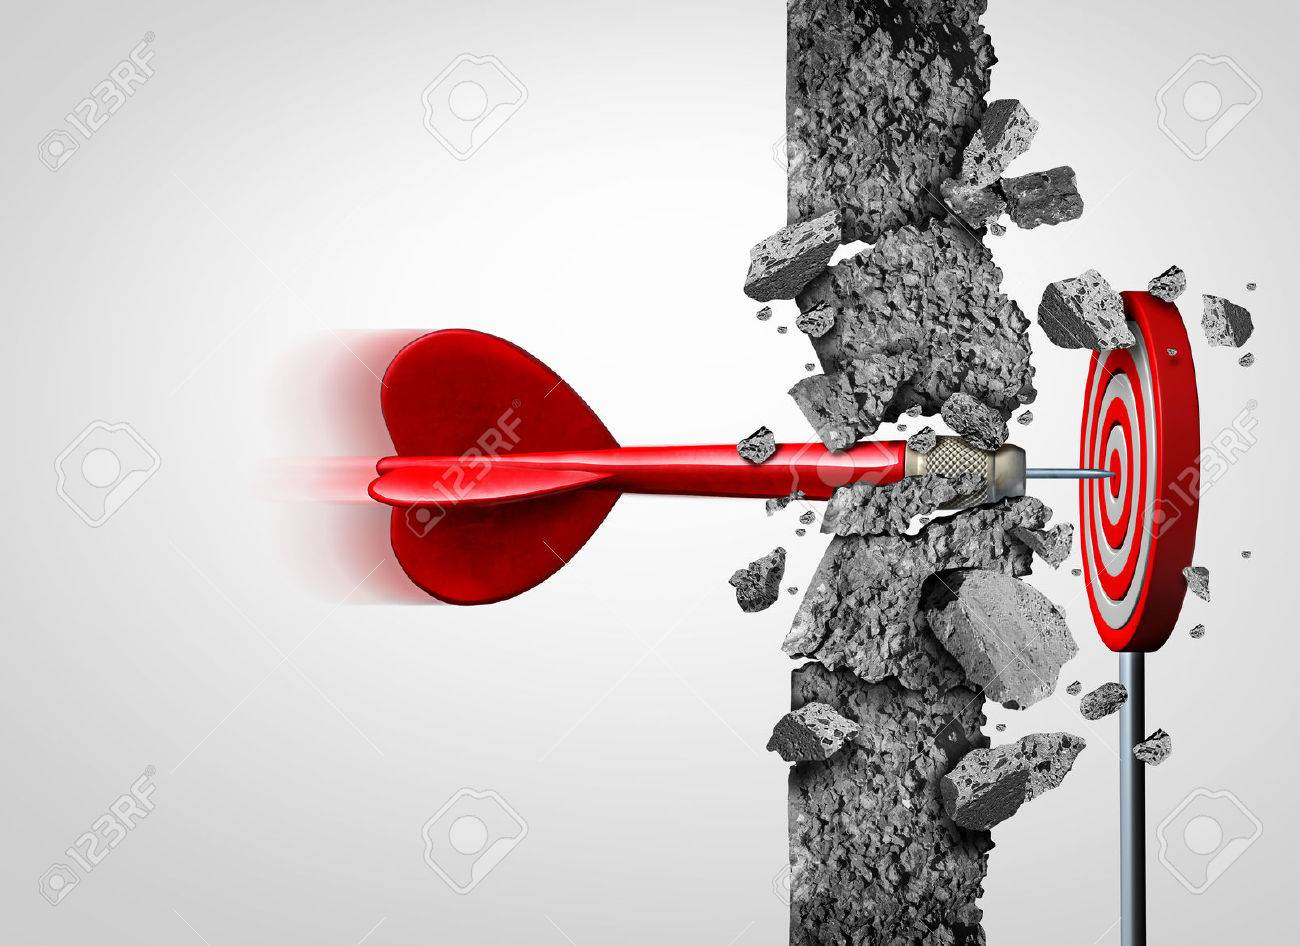 Breaking Through for success without limits and overcoming obstacles as a concrete wall to achieve a goal as a metaphor for a cure or business goals and hitting a financial target with 3D illustration elements. - 66522893